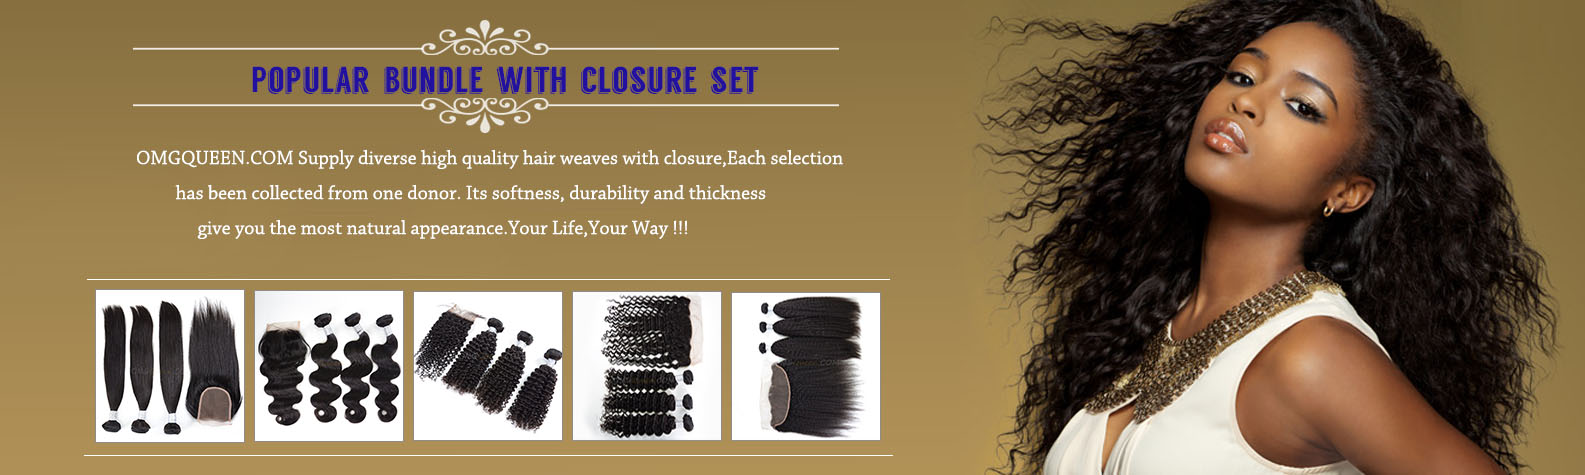 ❤️ Bundle & Closure